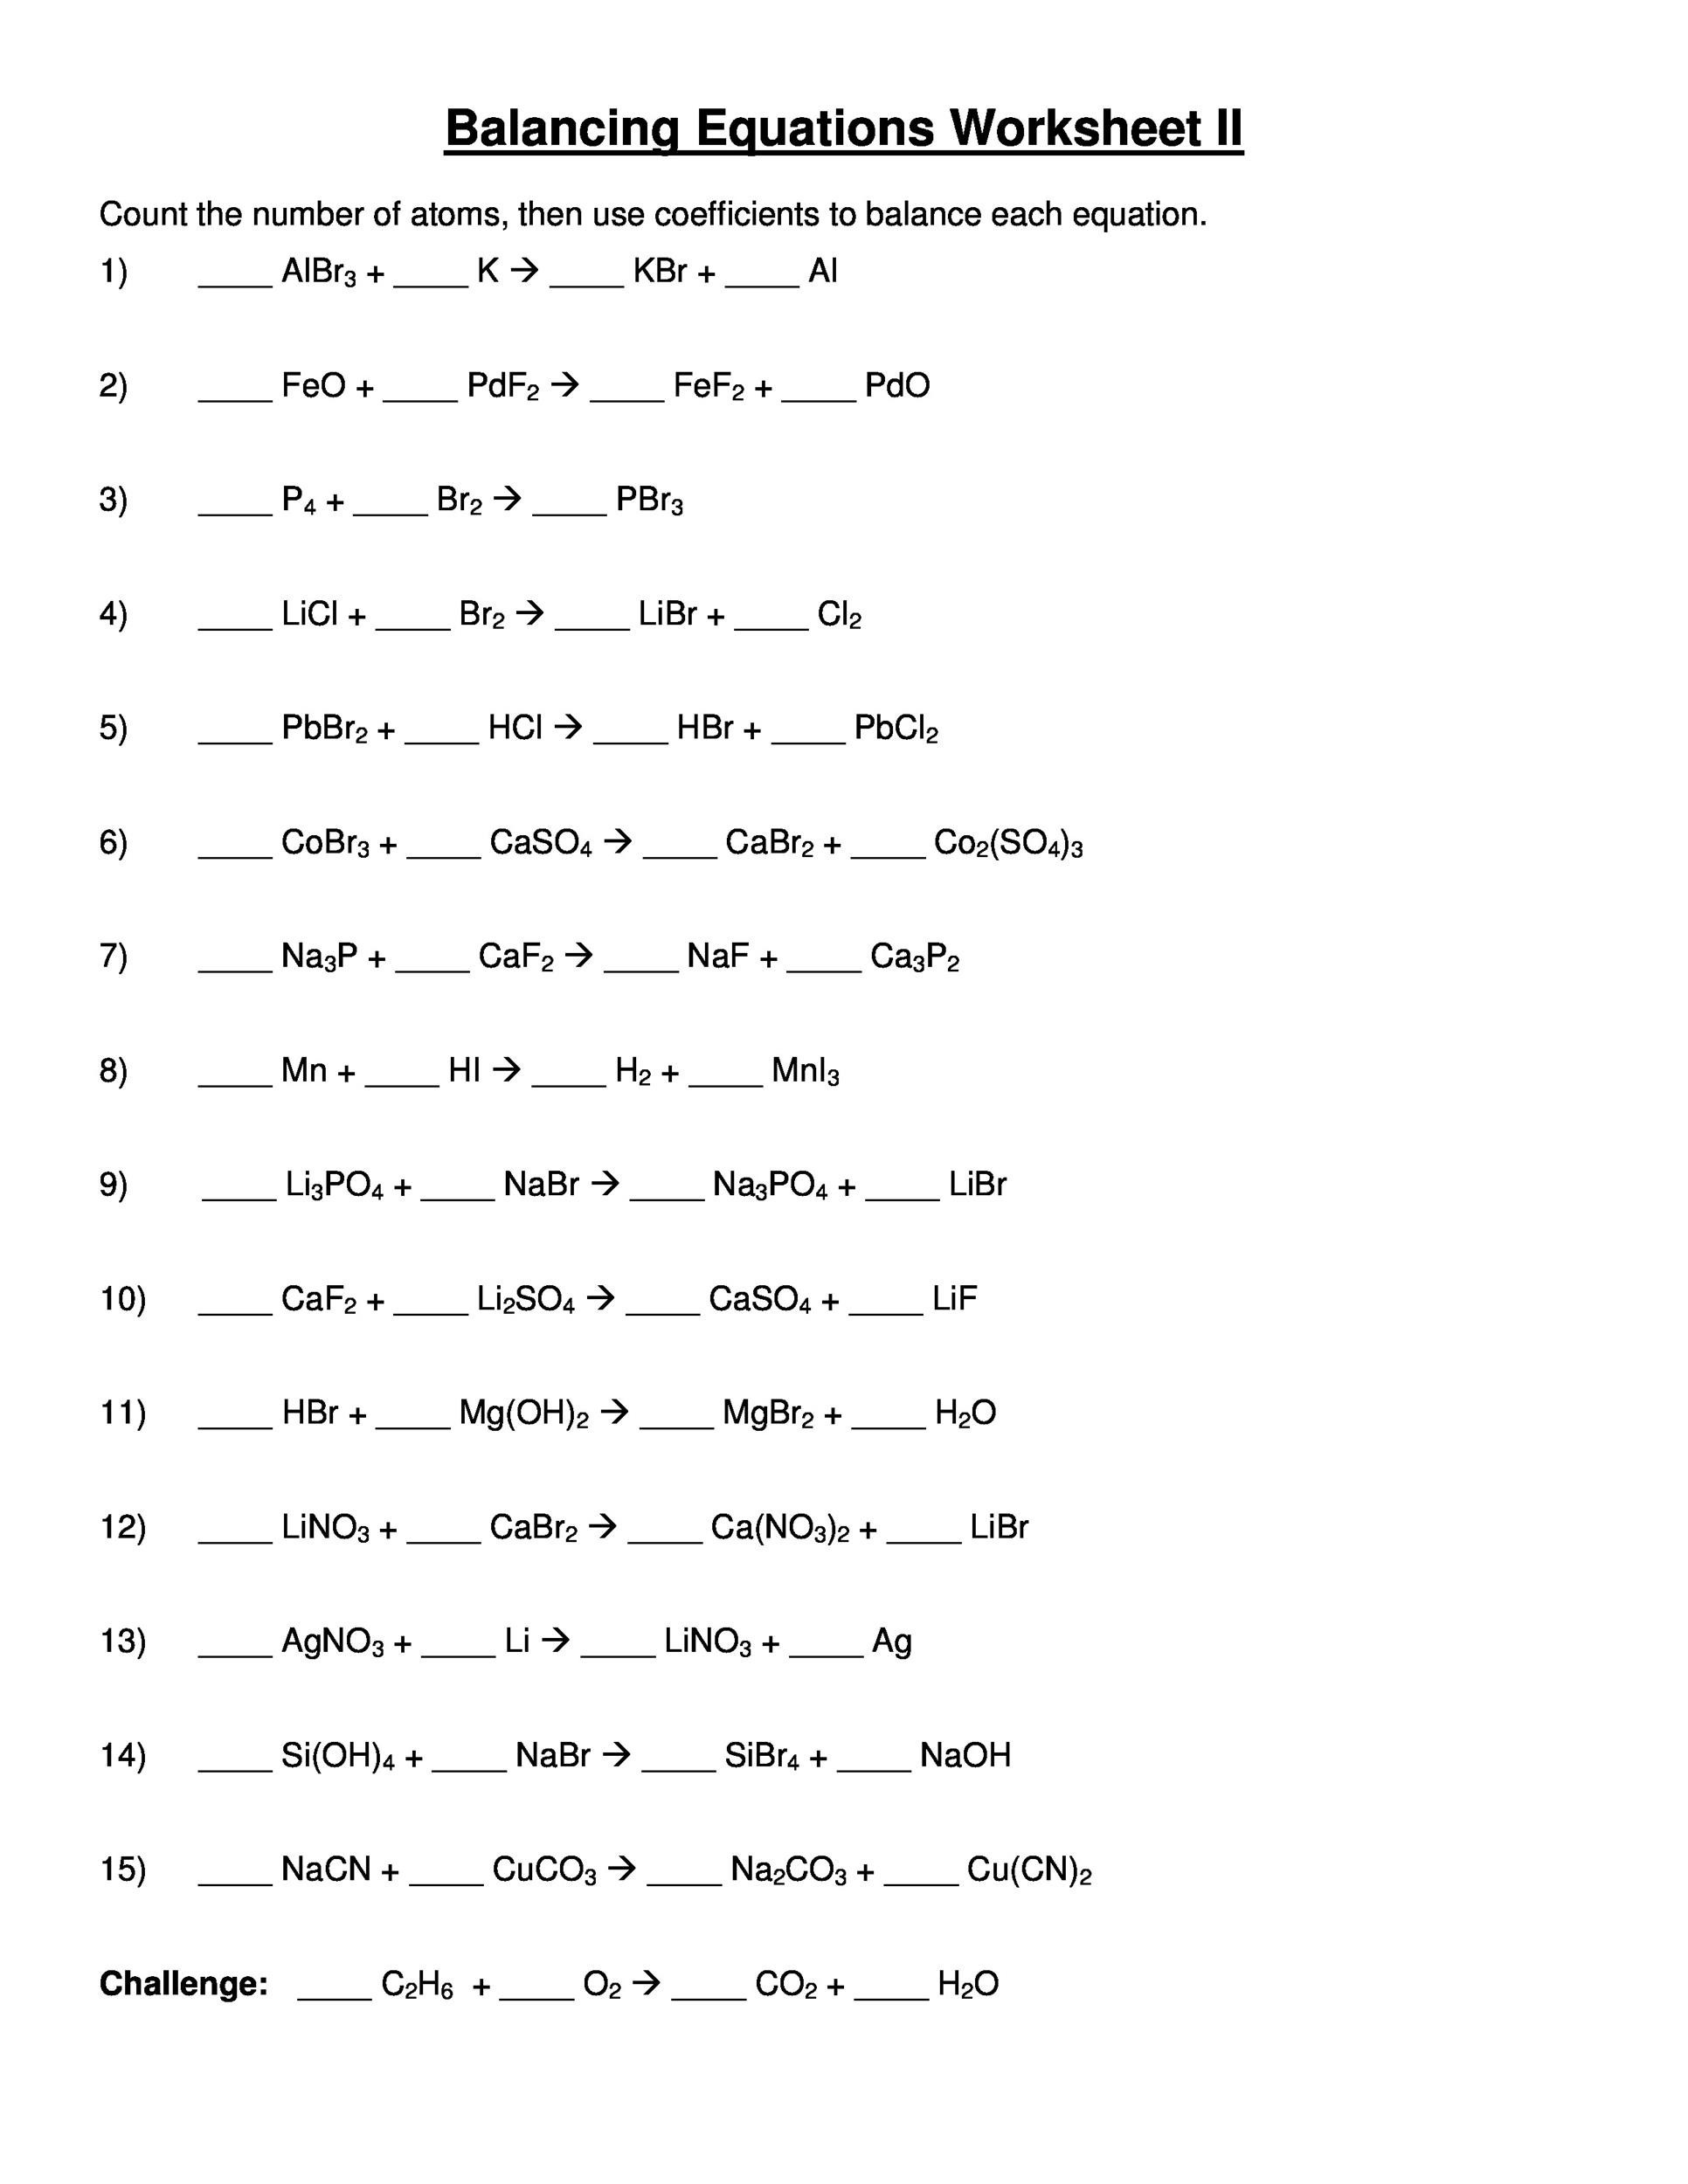 worksheet Balancing Equations Worksheet 2 Answers chemfiesta stoichiometry lab answers 28 images balancing balance the worksheets defendusinbattleblog